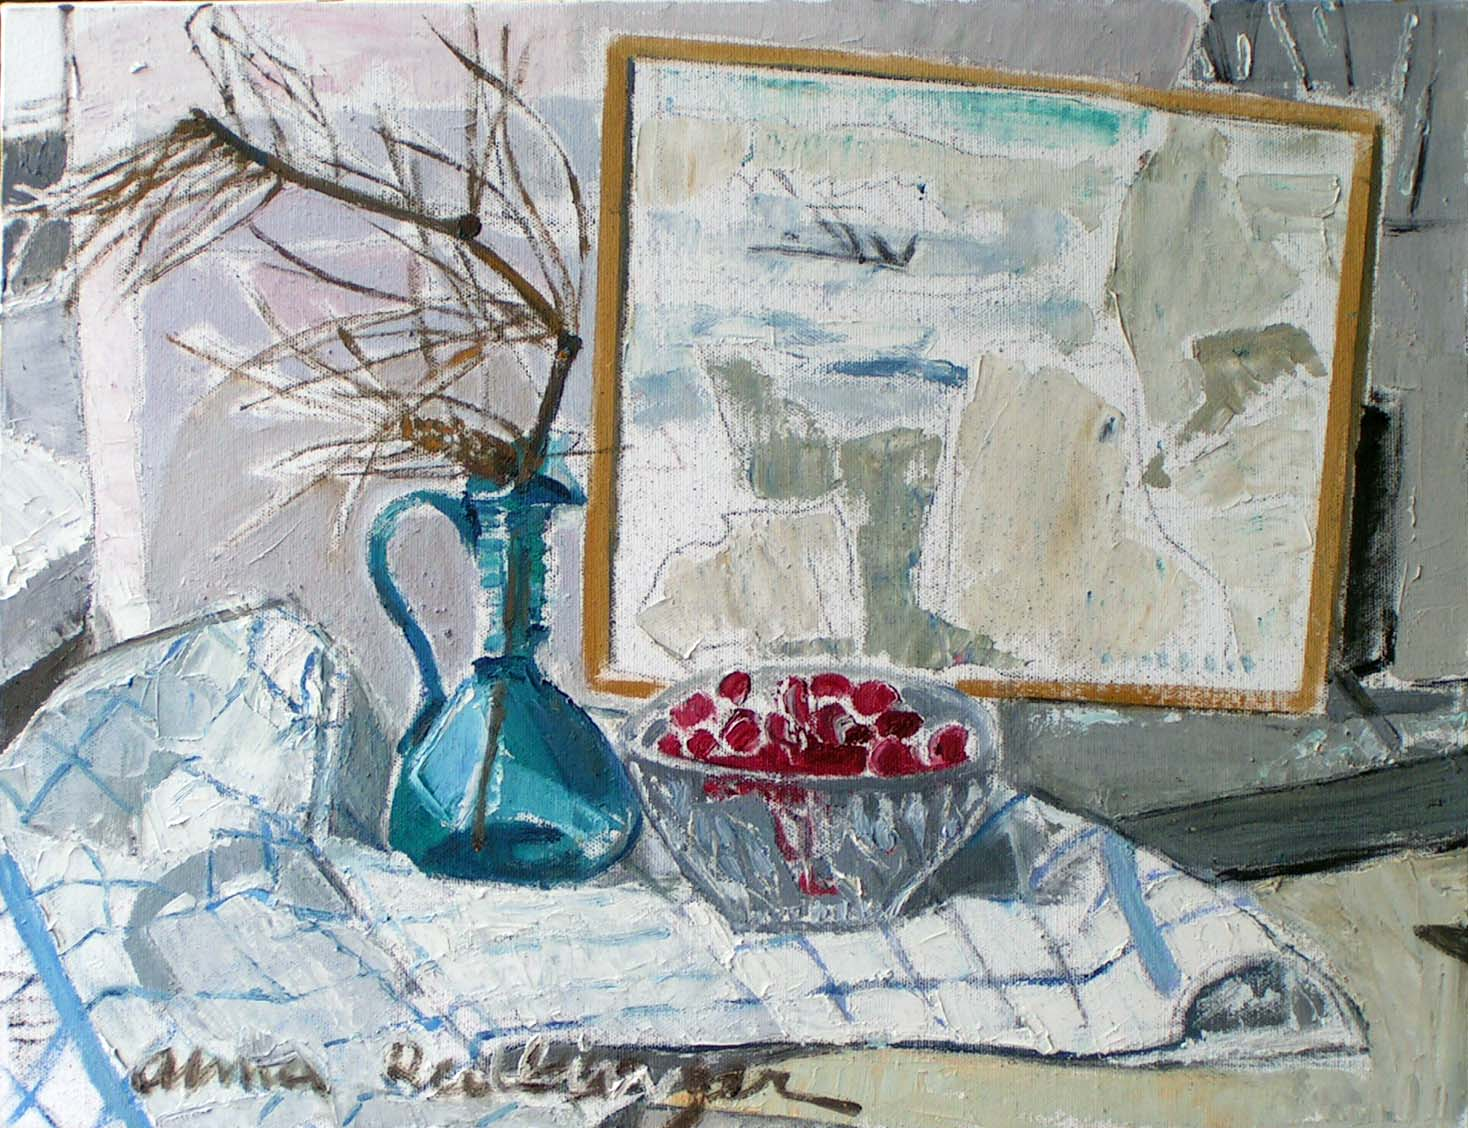 Cheries with landscape, 2008, oil_canvas, 40x50 cm